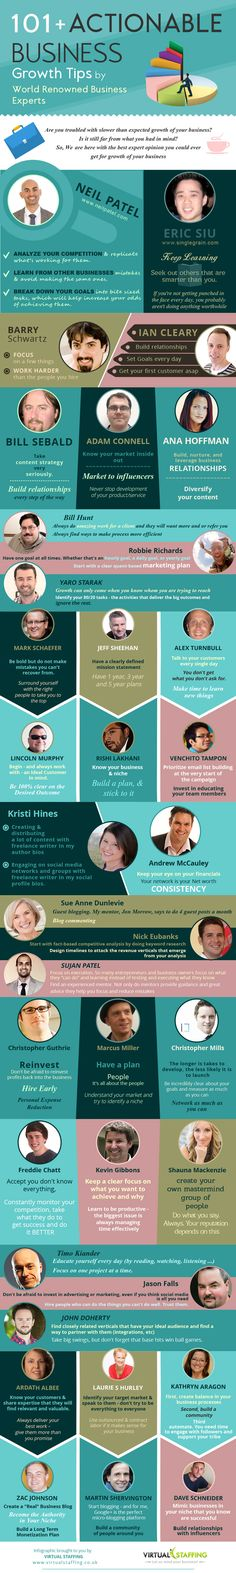 101 Actionable Business Growth Tips From Digital Marketing Experts [Infographic] — Medium Business Marketing, Content Marketing, Internet Marketing, Online Marketing, Digital Marketing, Business Infographics, Affiliate Marketing, Guerilla Marketing, Marketing Ideas